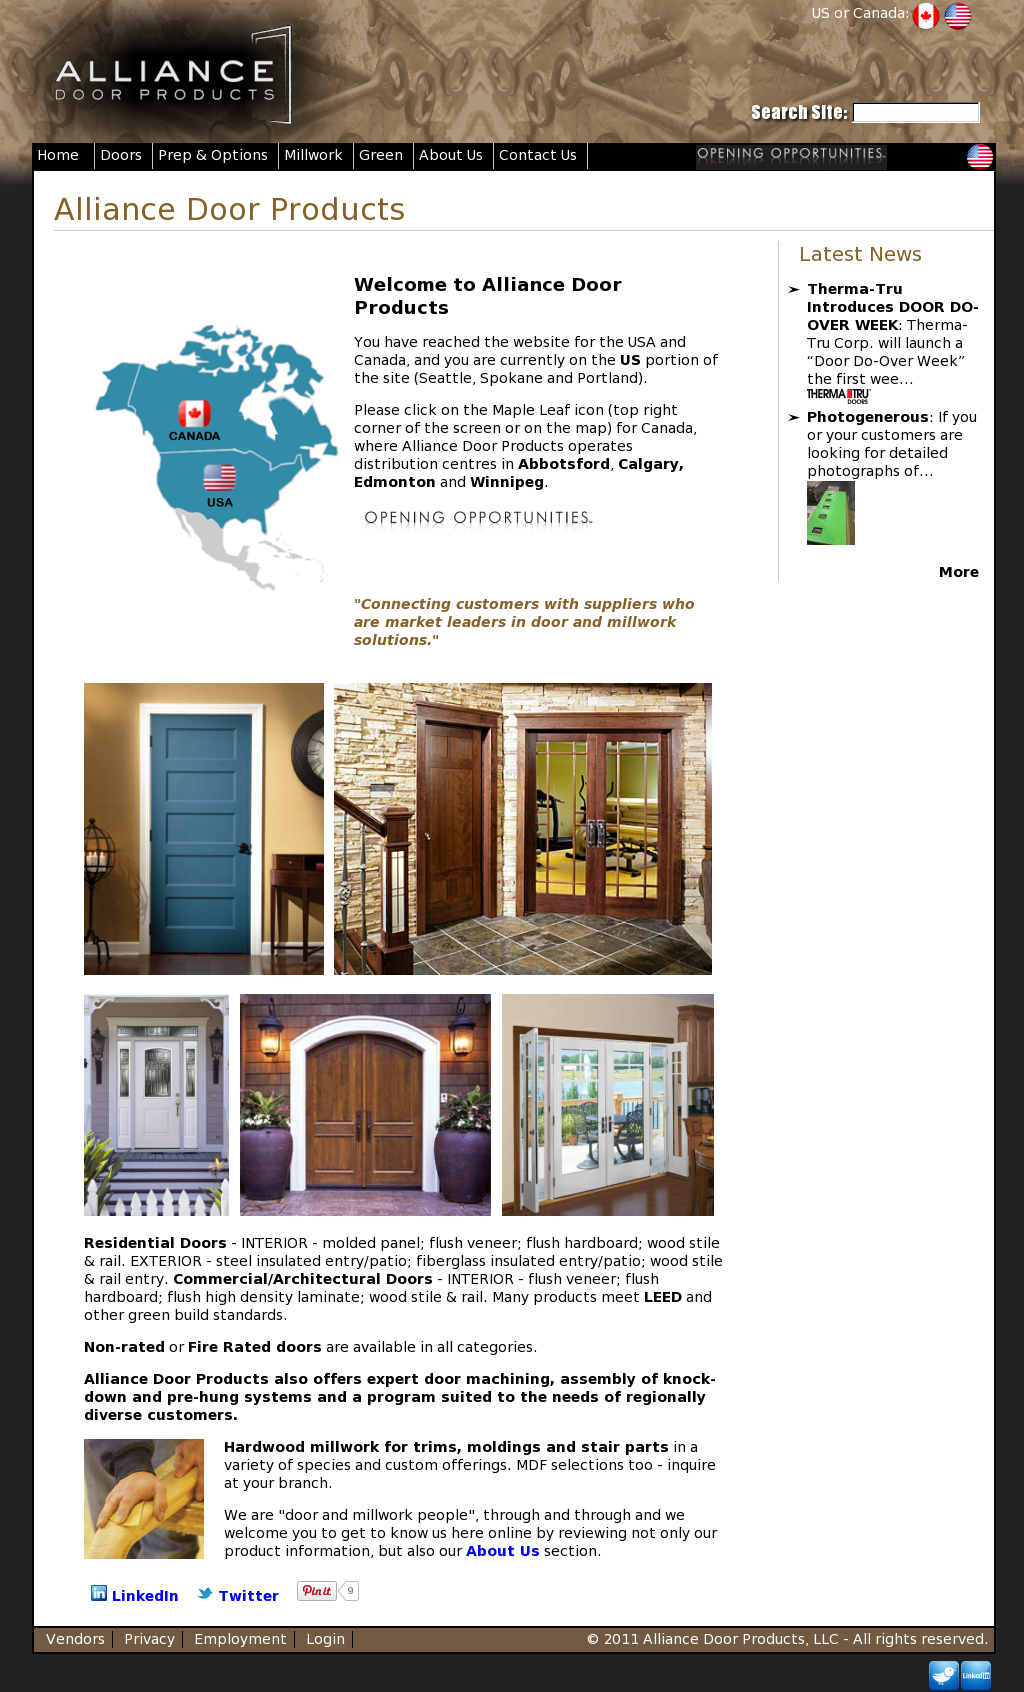 Beau Alliance Door Products Competitors, Revenue And Employees   Owler Company  Profile